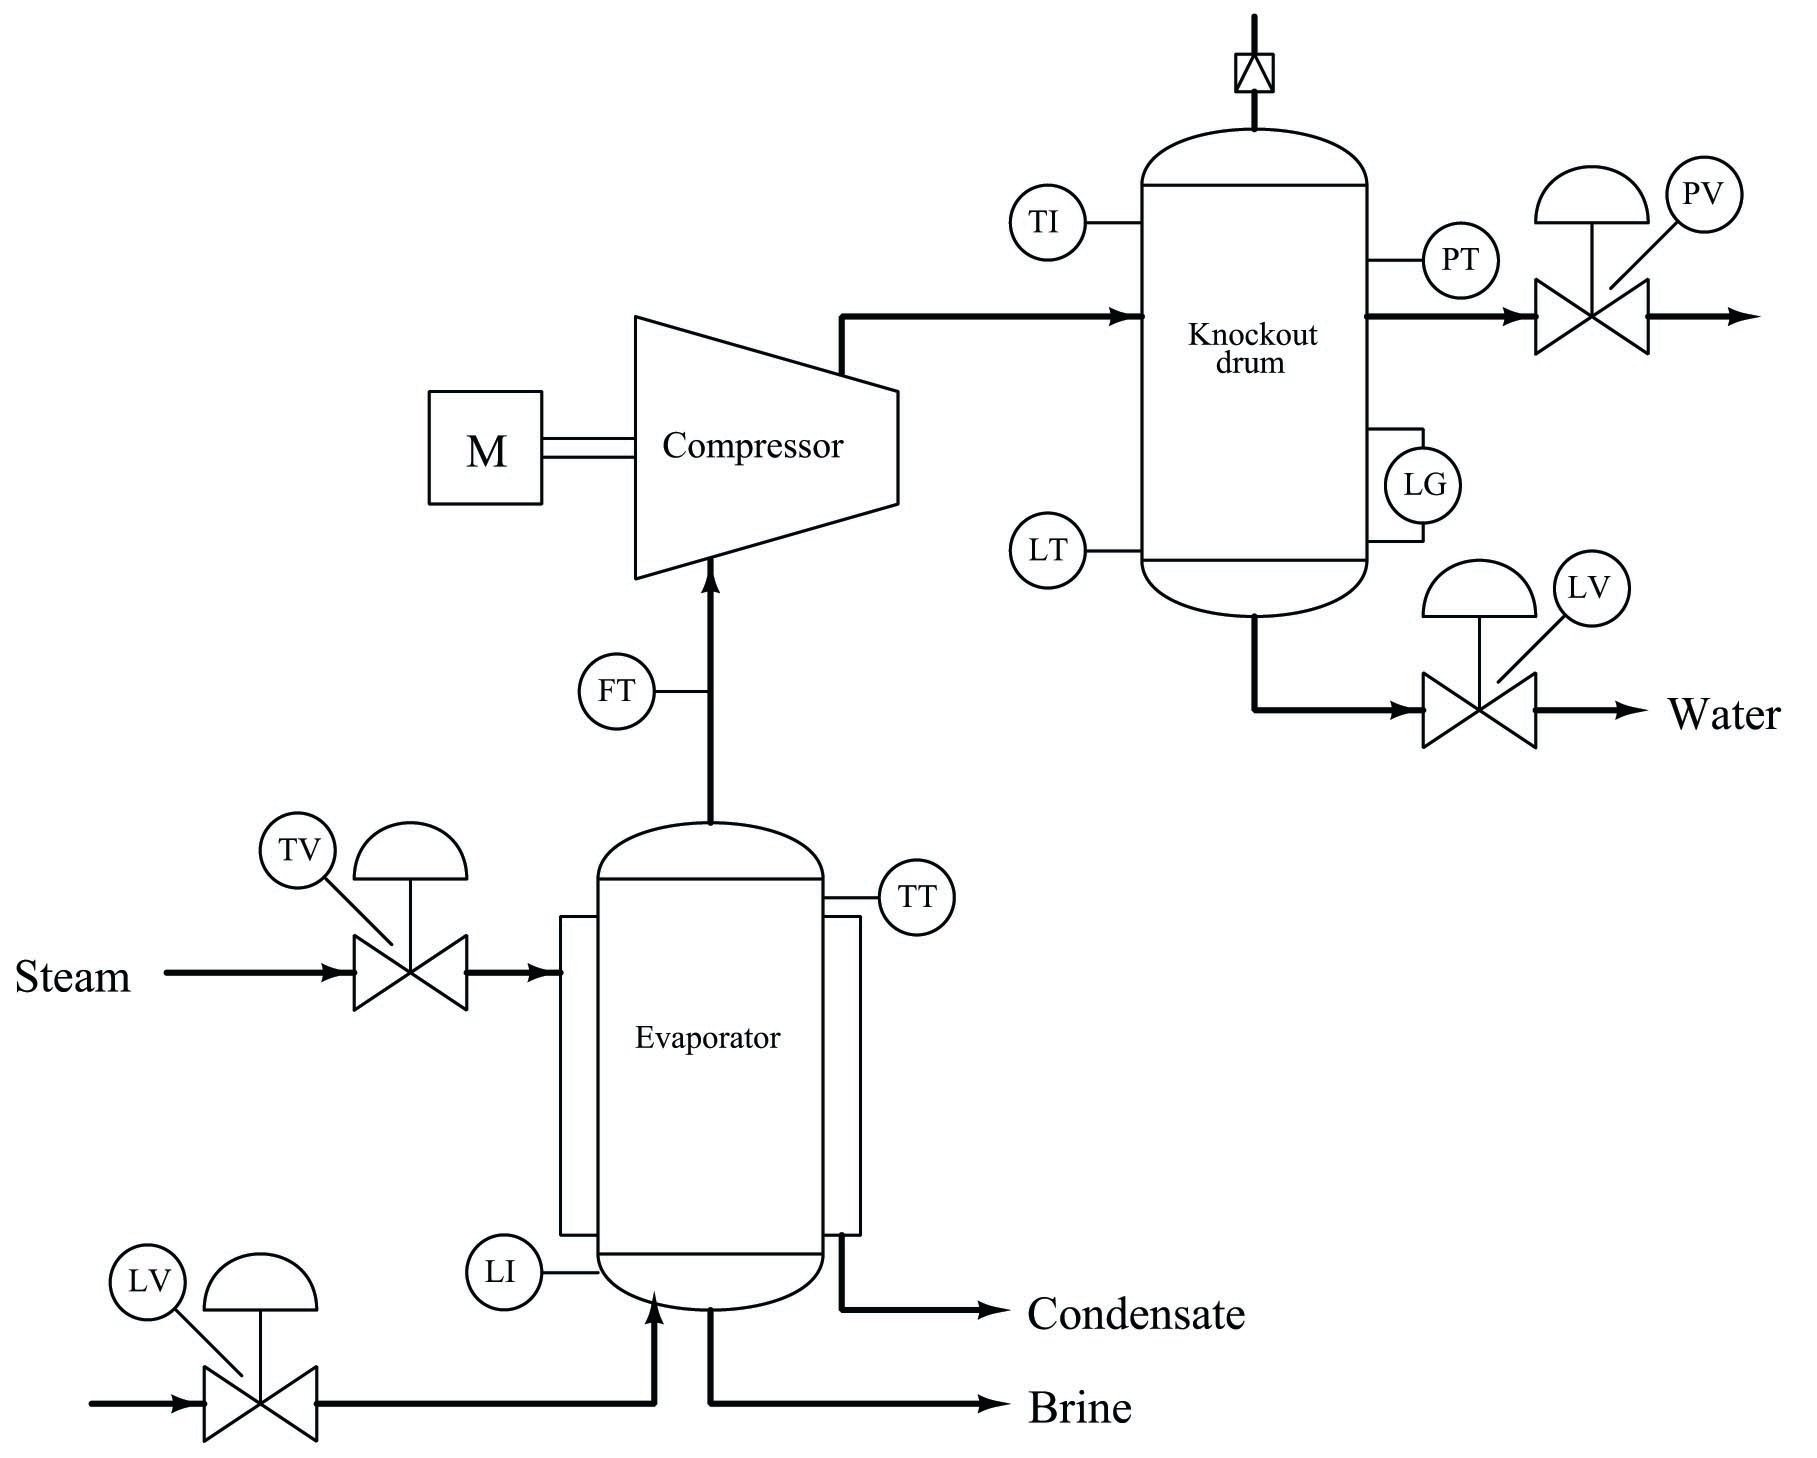 process flow diagrams | control and instrumentation documentation |  automation textbook  control.com